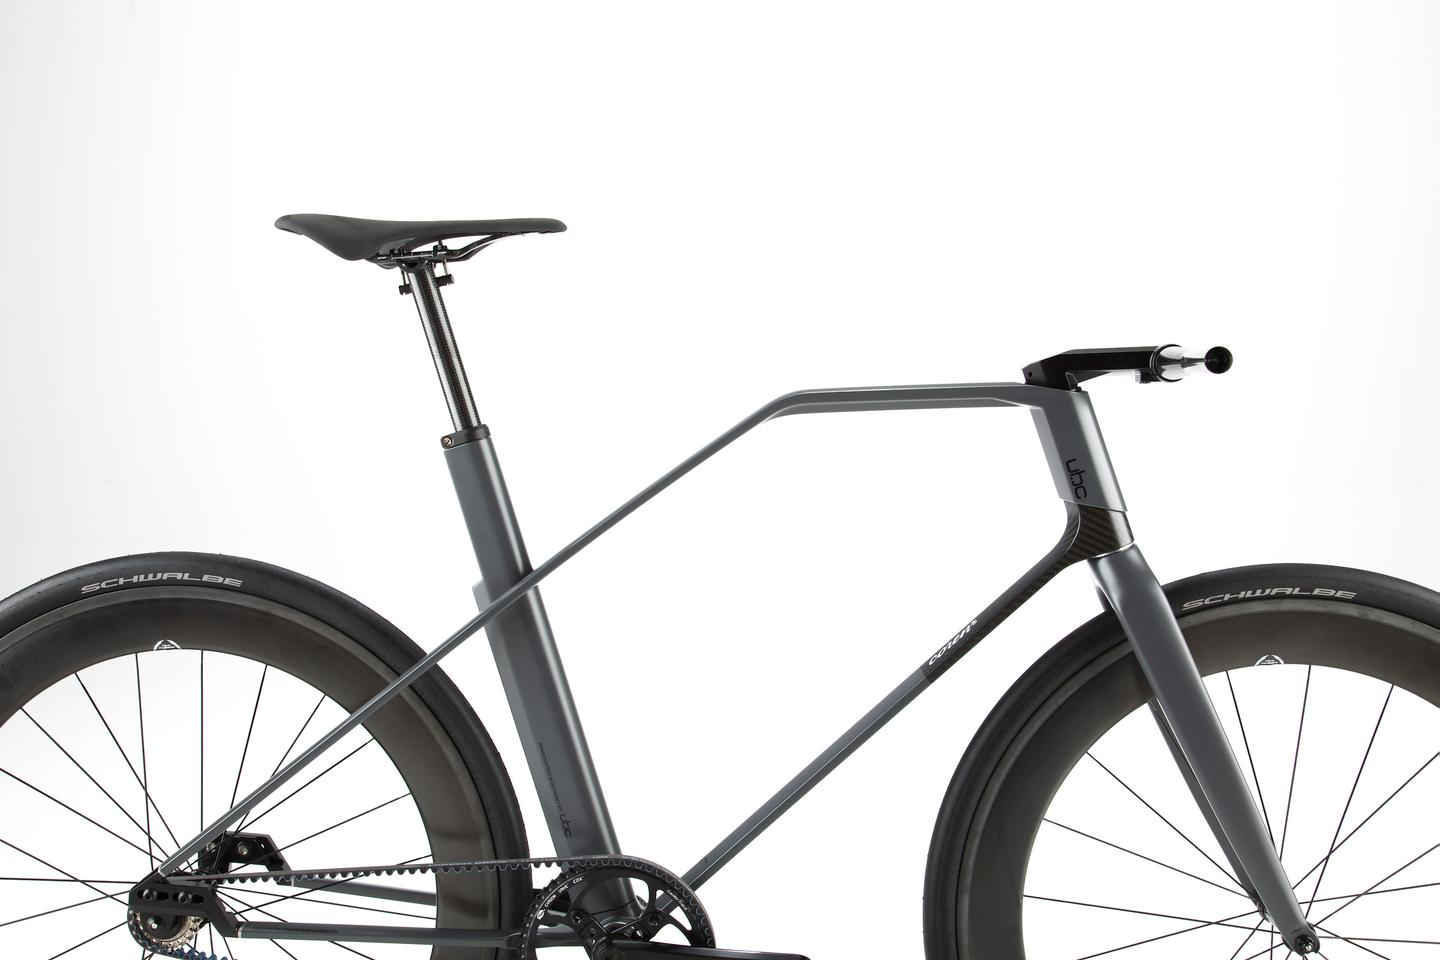 The UBC coren's carbon fiber is shaped into a unique frame